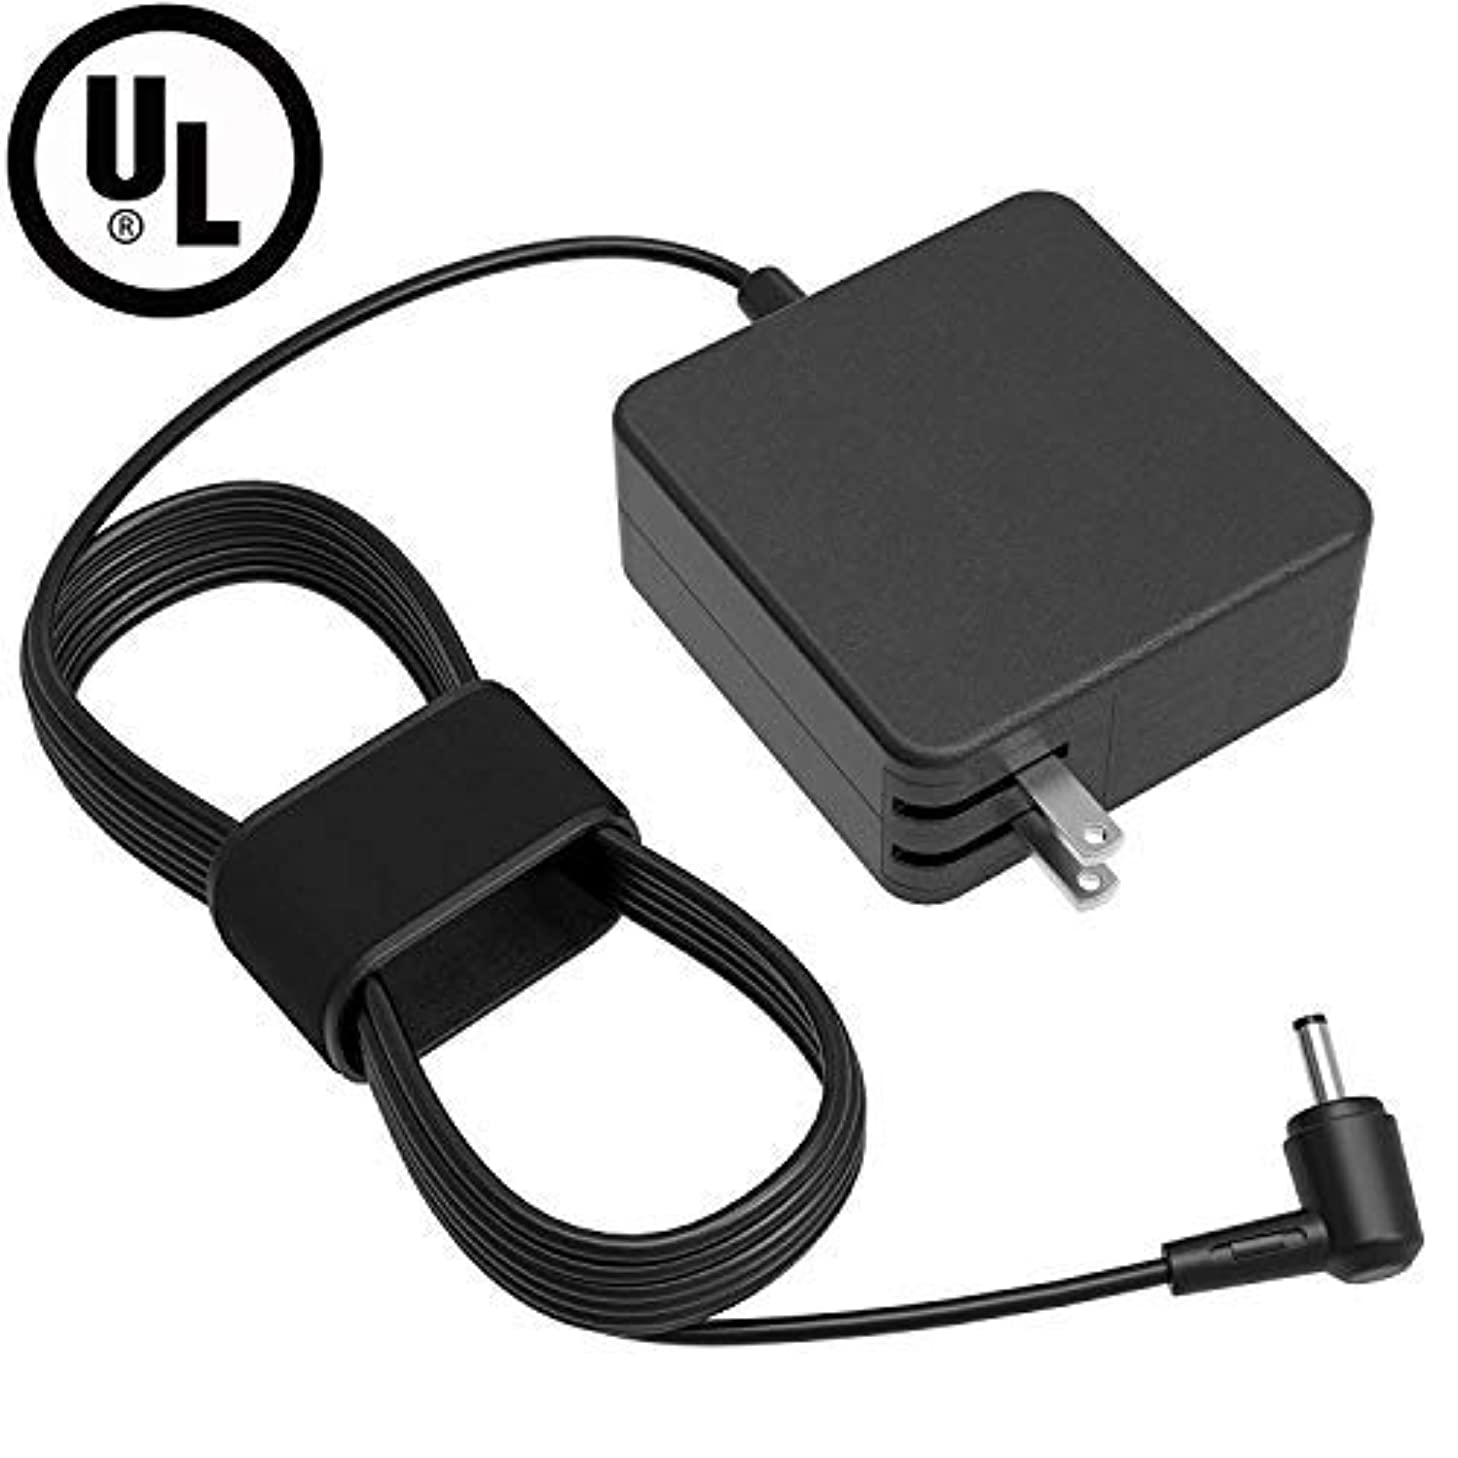 [UL Listed] AC Charger for Asus TP500 TP500L TP500LA TP500LN TP550LA TP550L TP550 K551LN K551L K551 K550 K550CA K550C K550LA K550LNV K550L X505BA X505B X505 Laptop Power Supply Adapter Cord